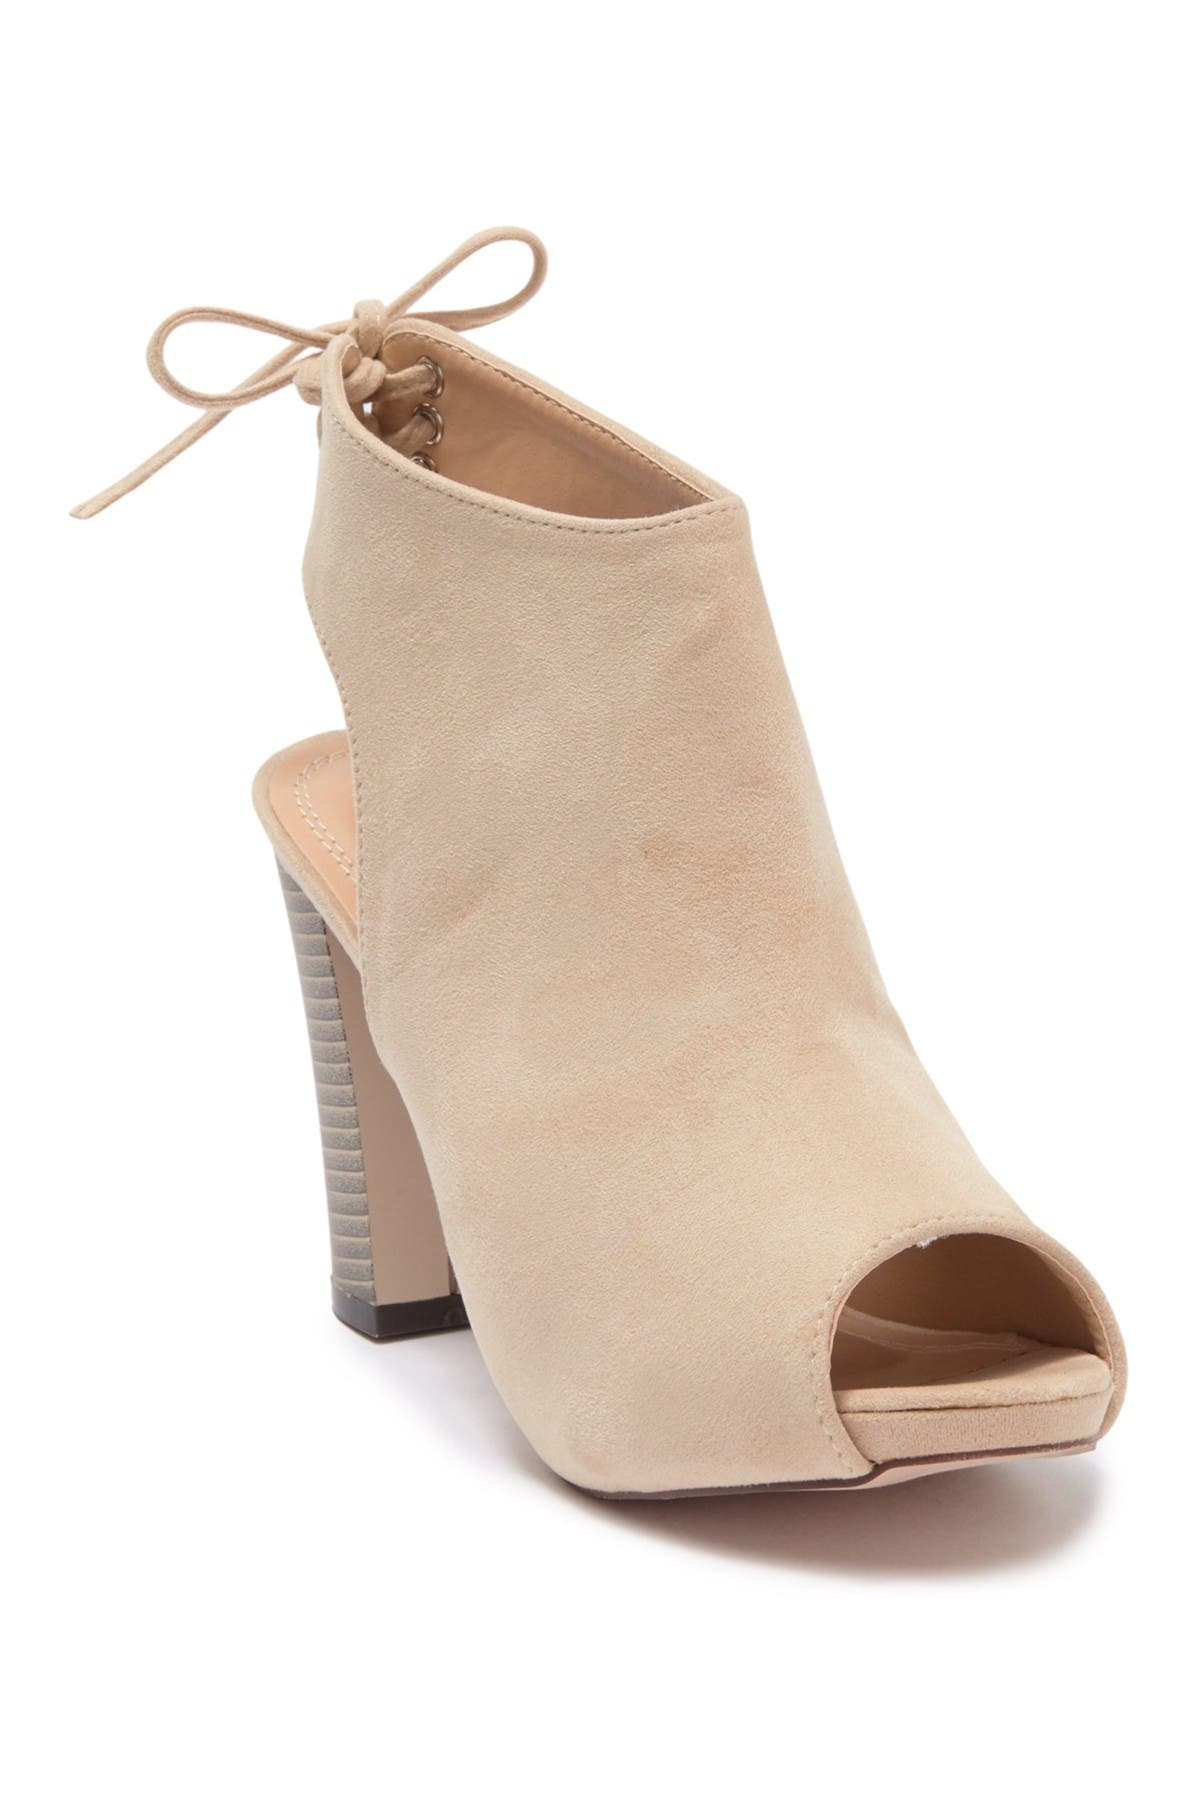 Image of Chase & Chloe Marcy Cutout Bootie